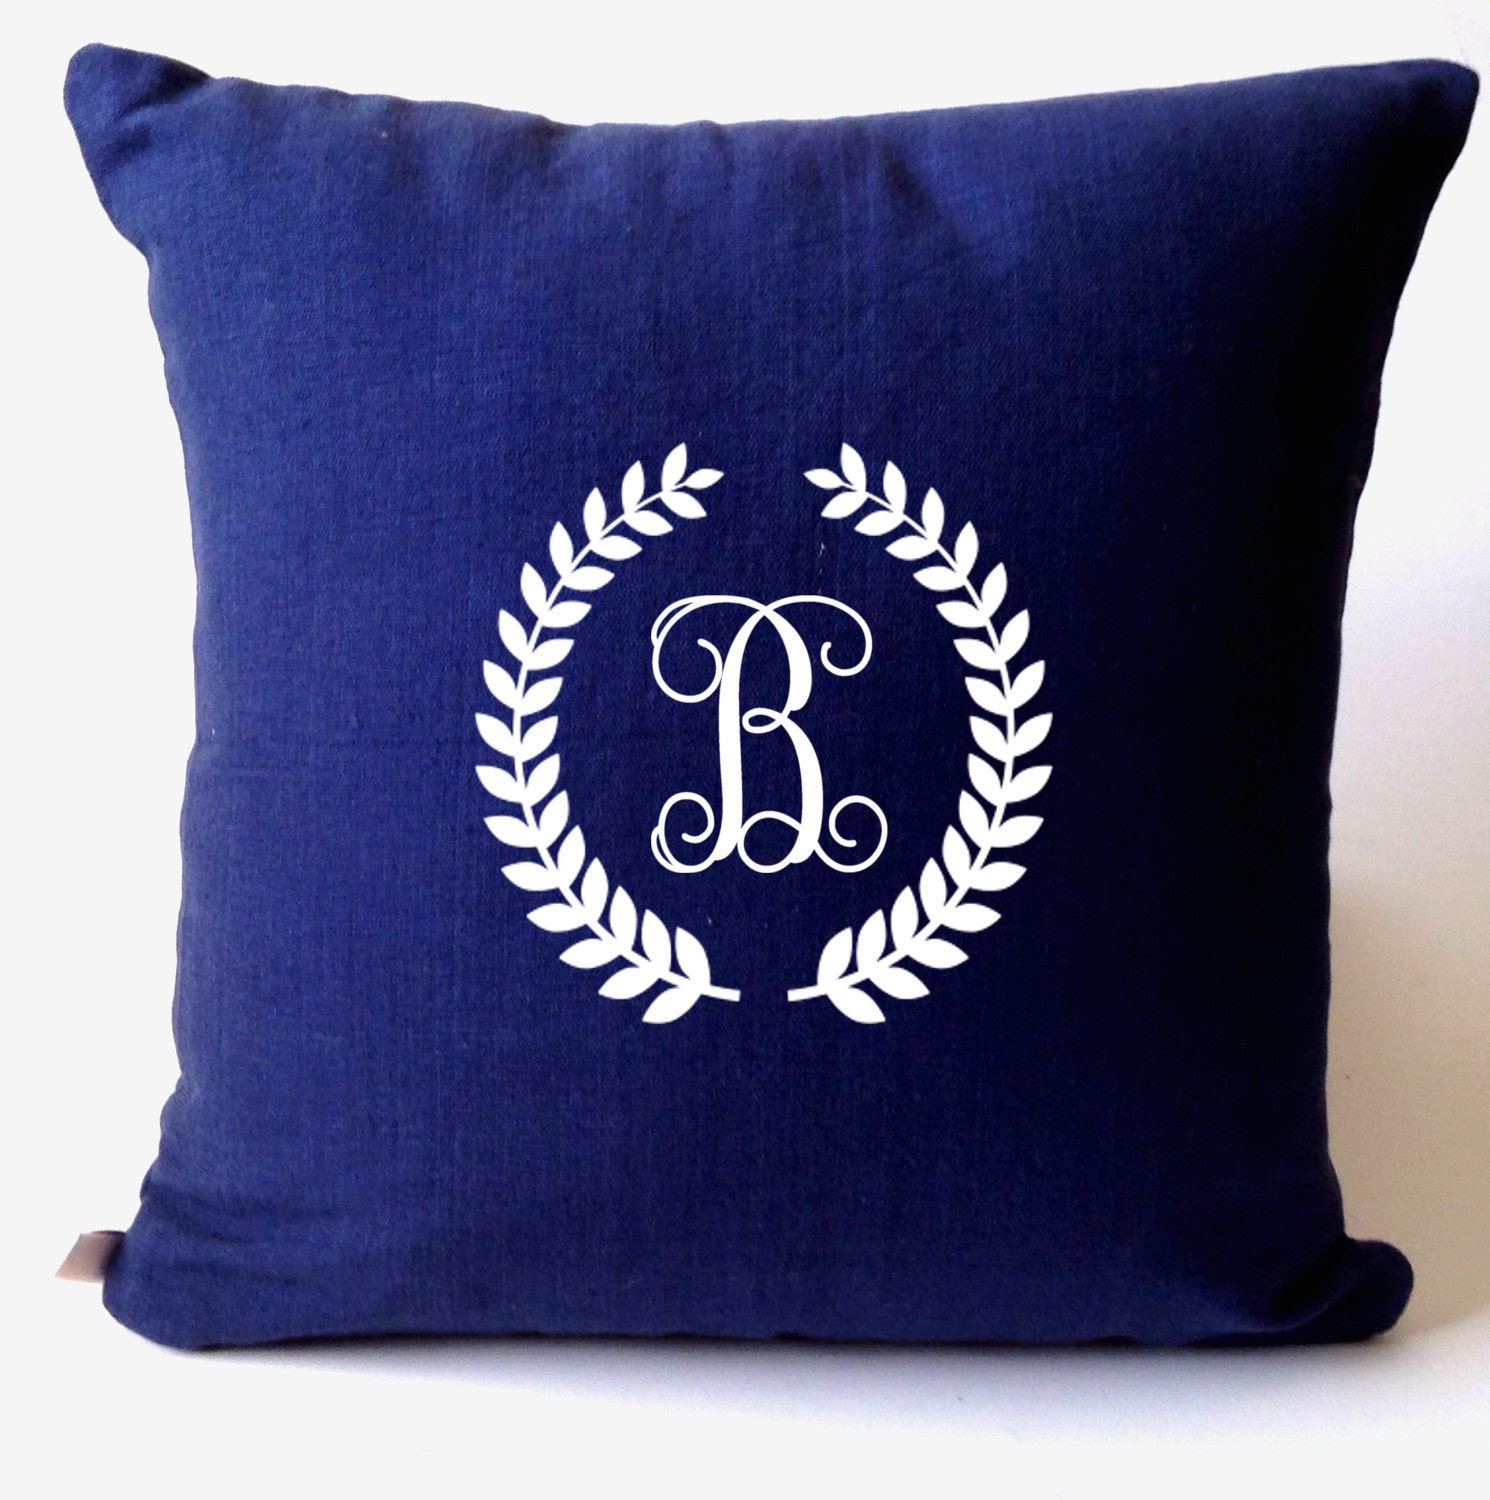 Decorative Pillows With Monogram : Monogrammed Wreath Decorative Pillows Monogram Vine Throw